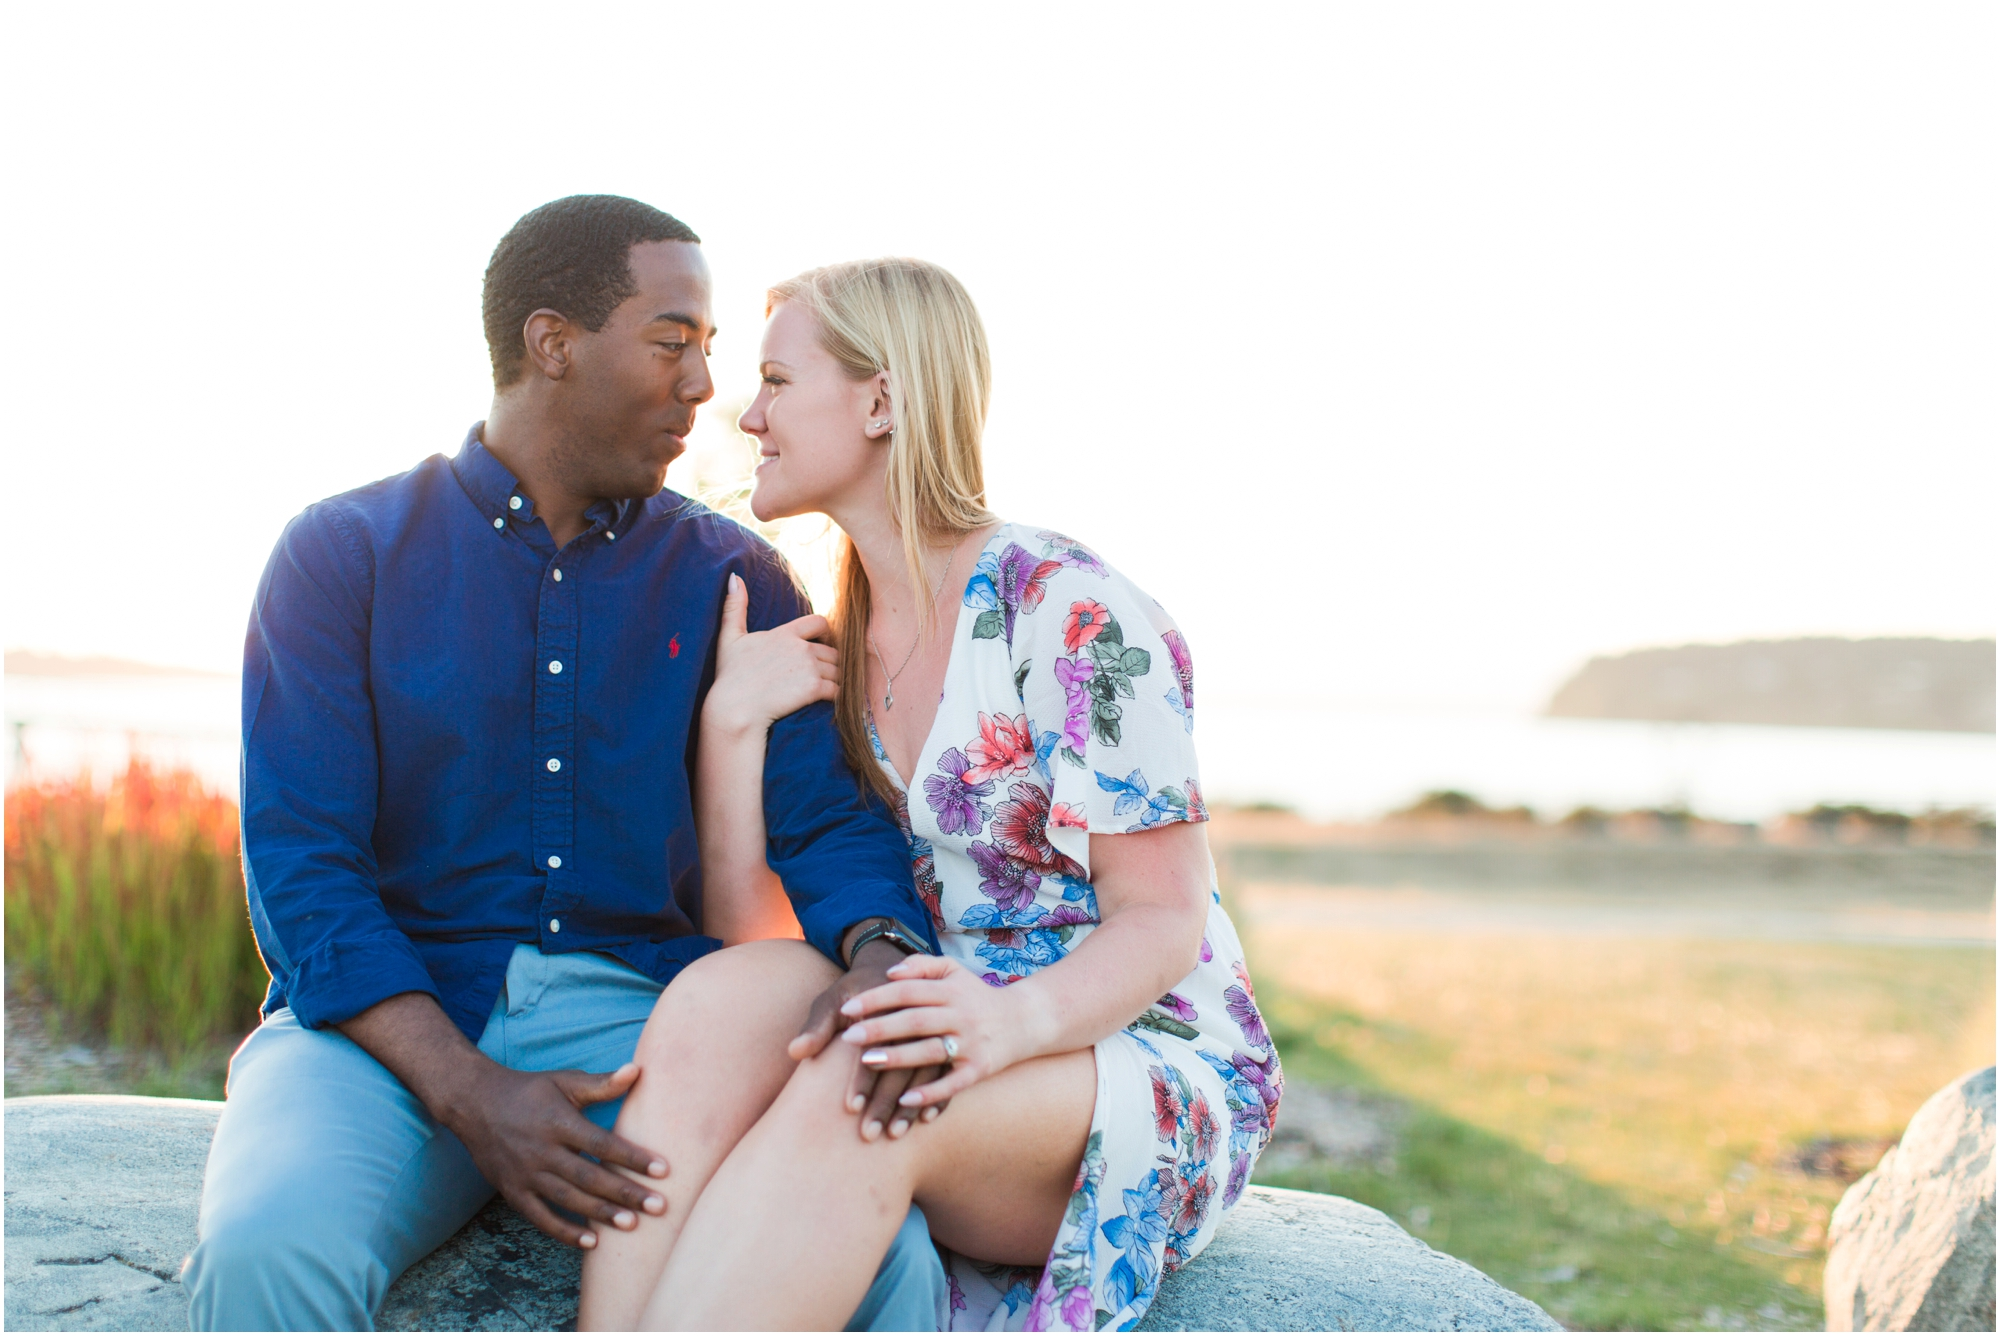 Chambers Bay engagement shoot in Tacoma, WA. Photos by Briana Calderon Photography based in the greater Seattle Area._1268.jpg